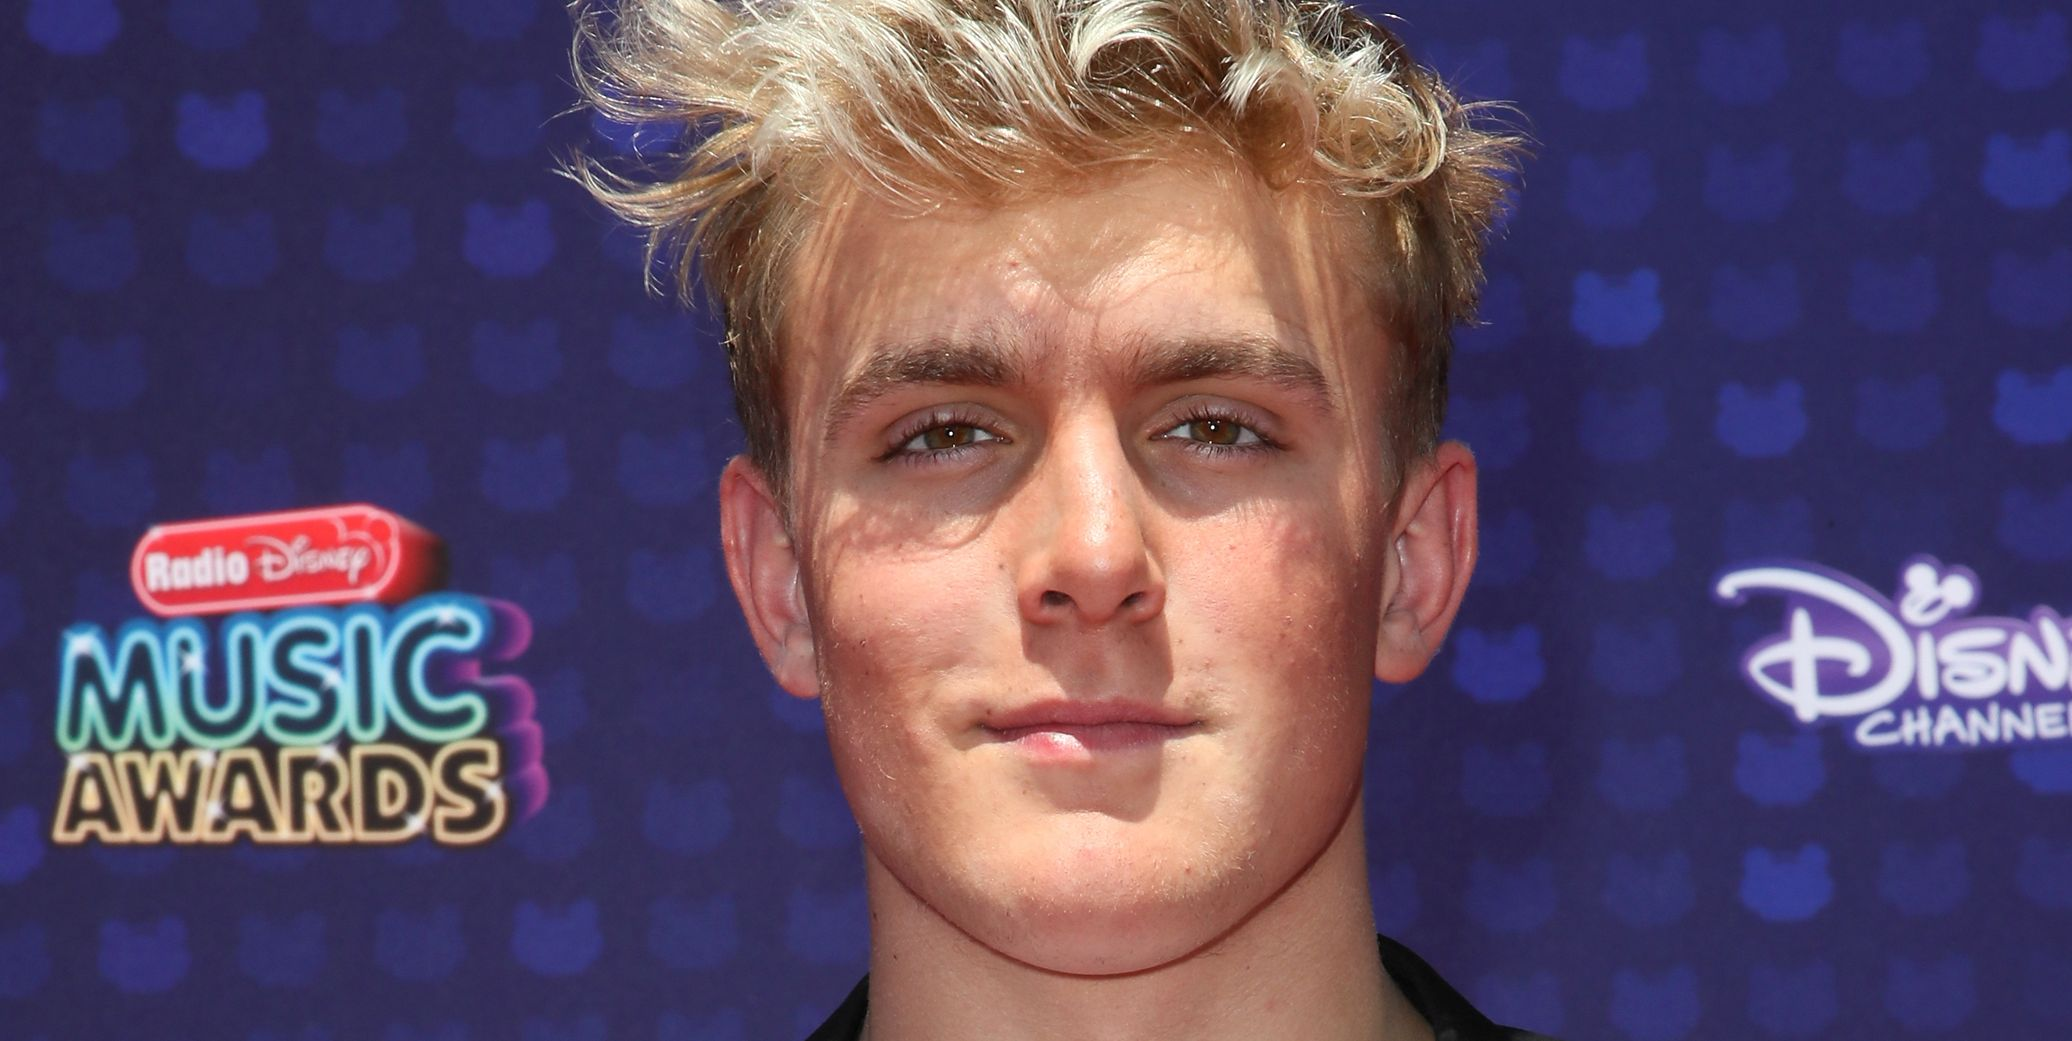 Jake Paul Just Got Dropped from His Disney Channel Show Over THAT Video